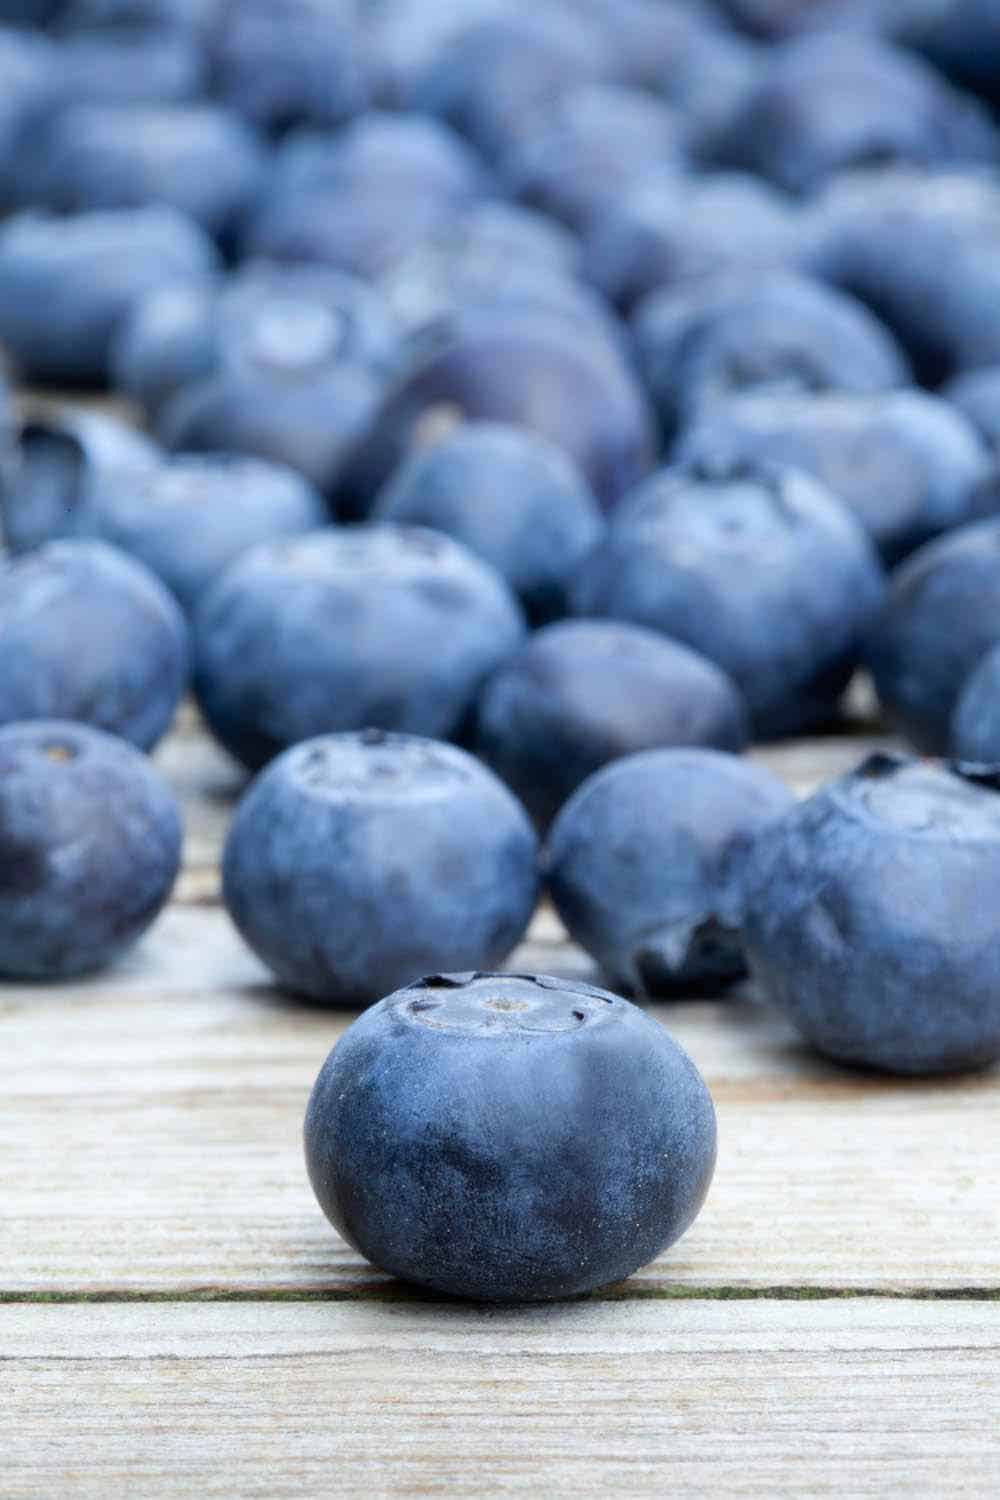 blueberries after harvesting on a wooden table